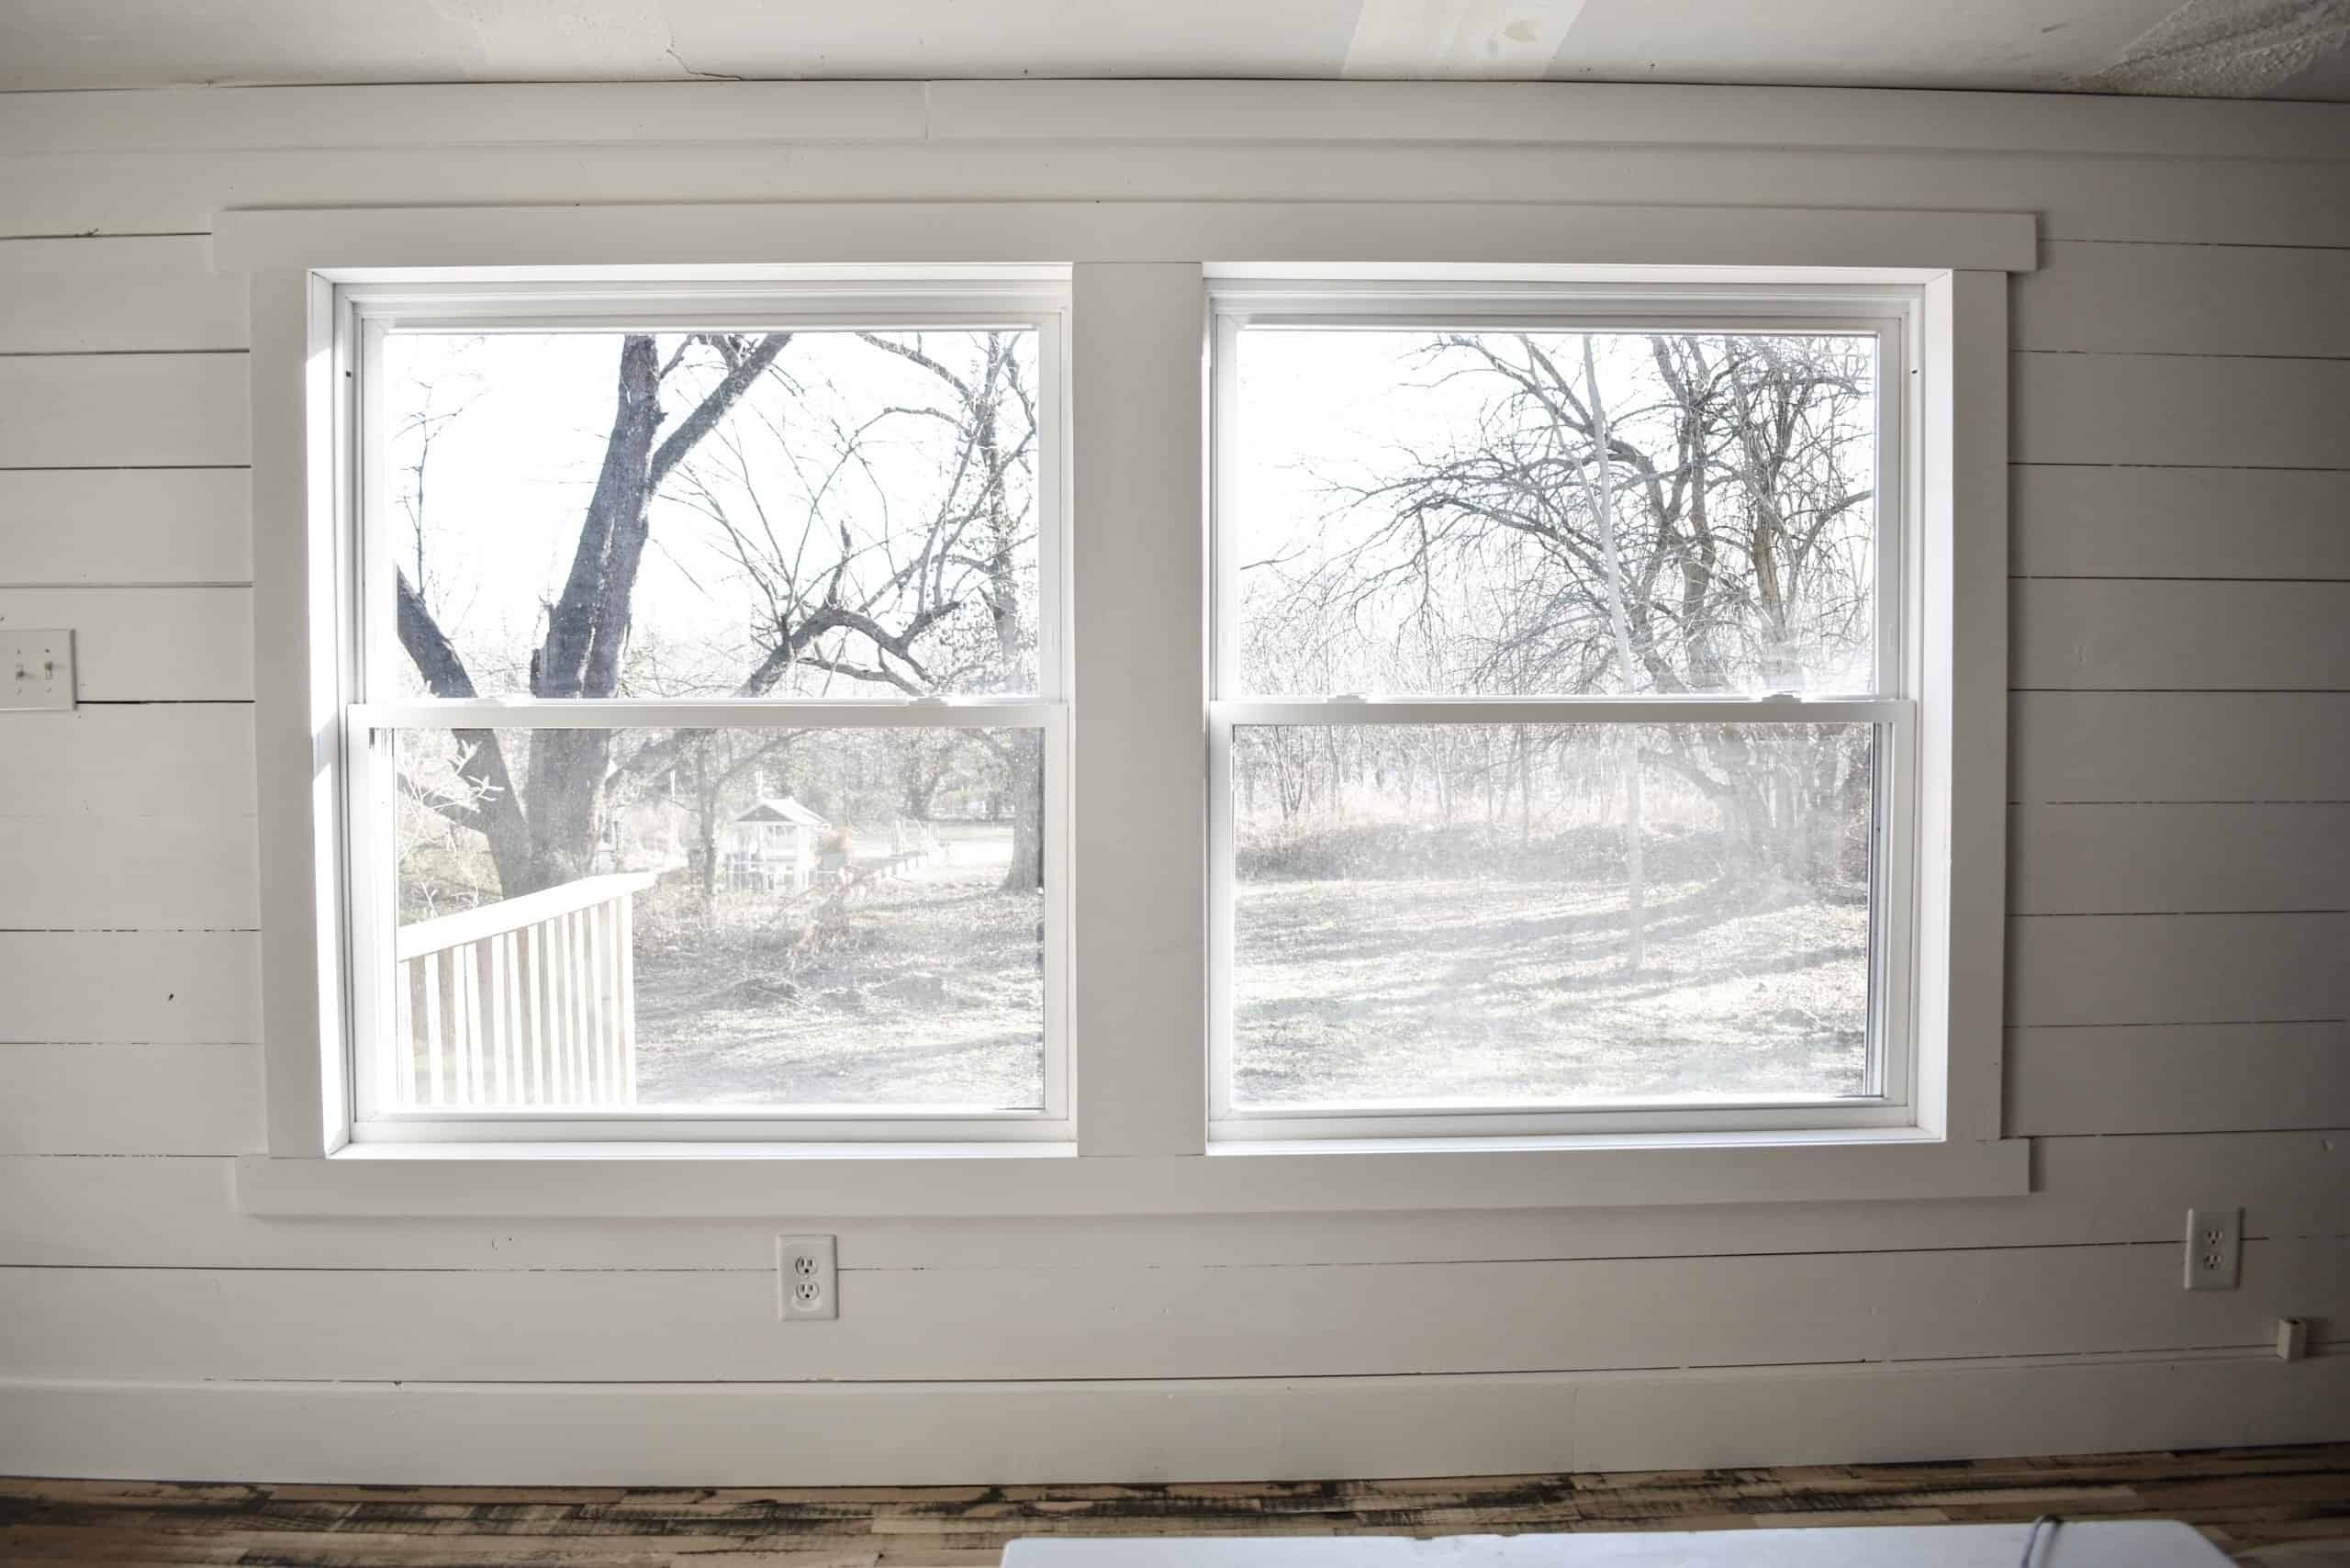 How to Add Window Trim to Mobile Home Windows